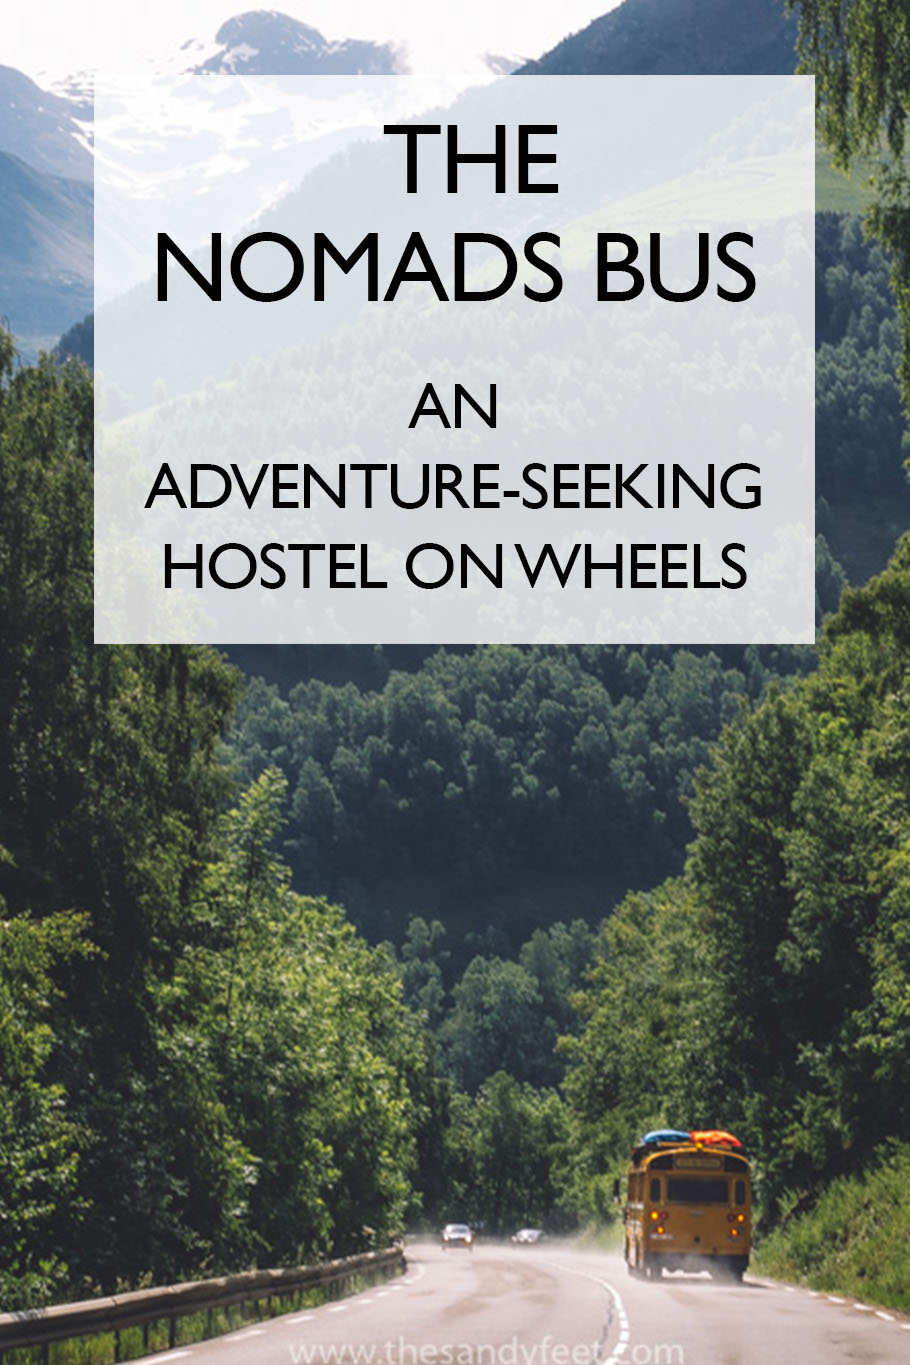 The Nomads Bus: An Adventure-Seeking Hostel on Wheels